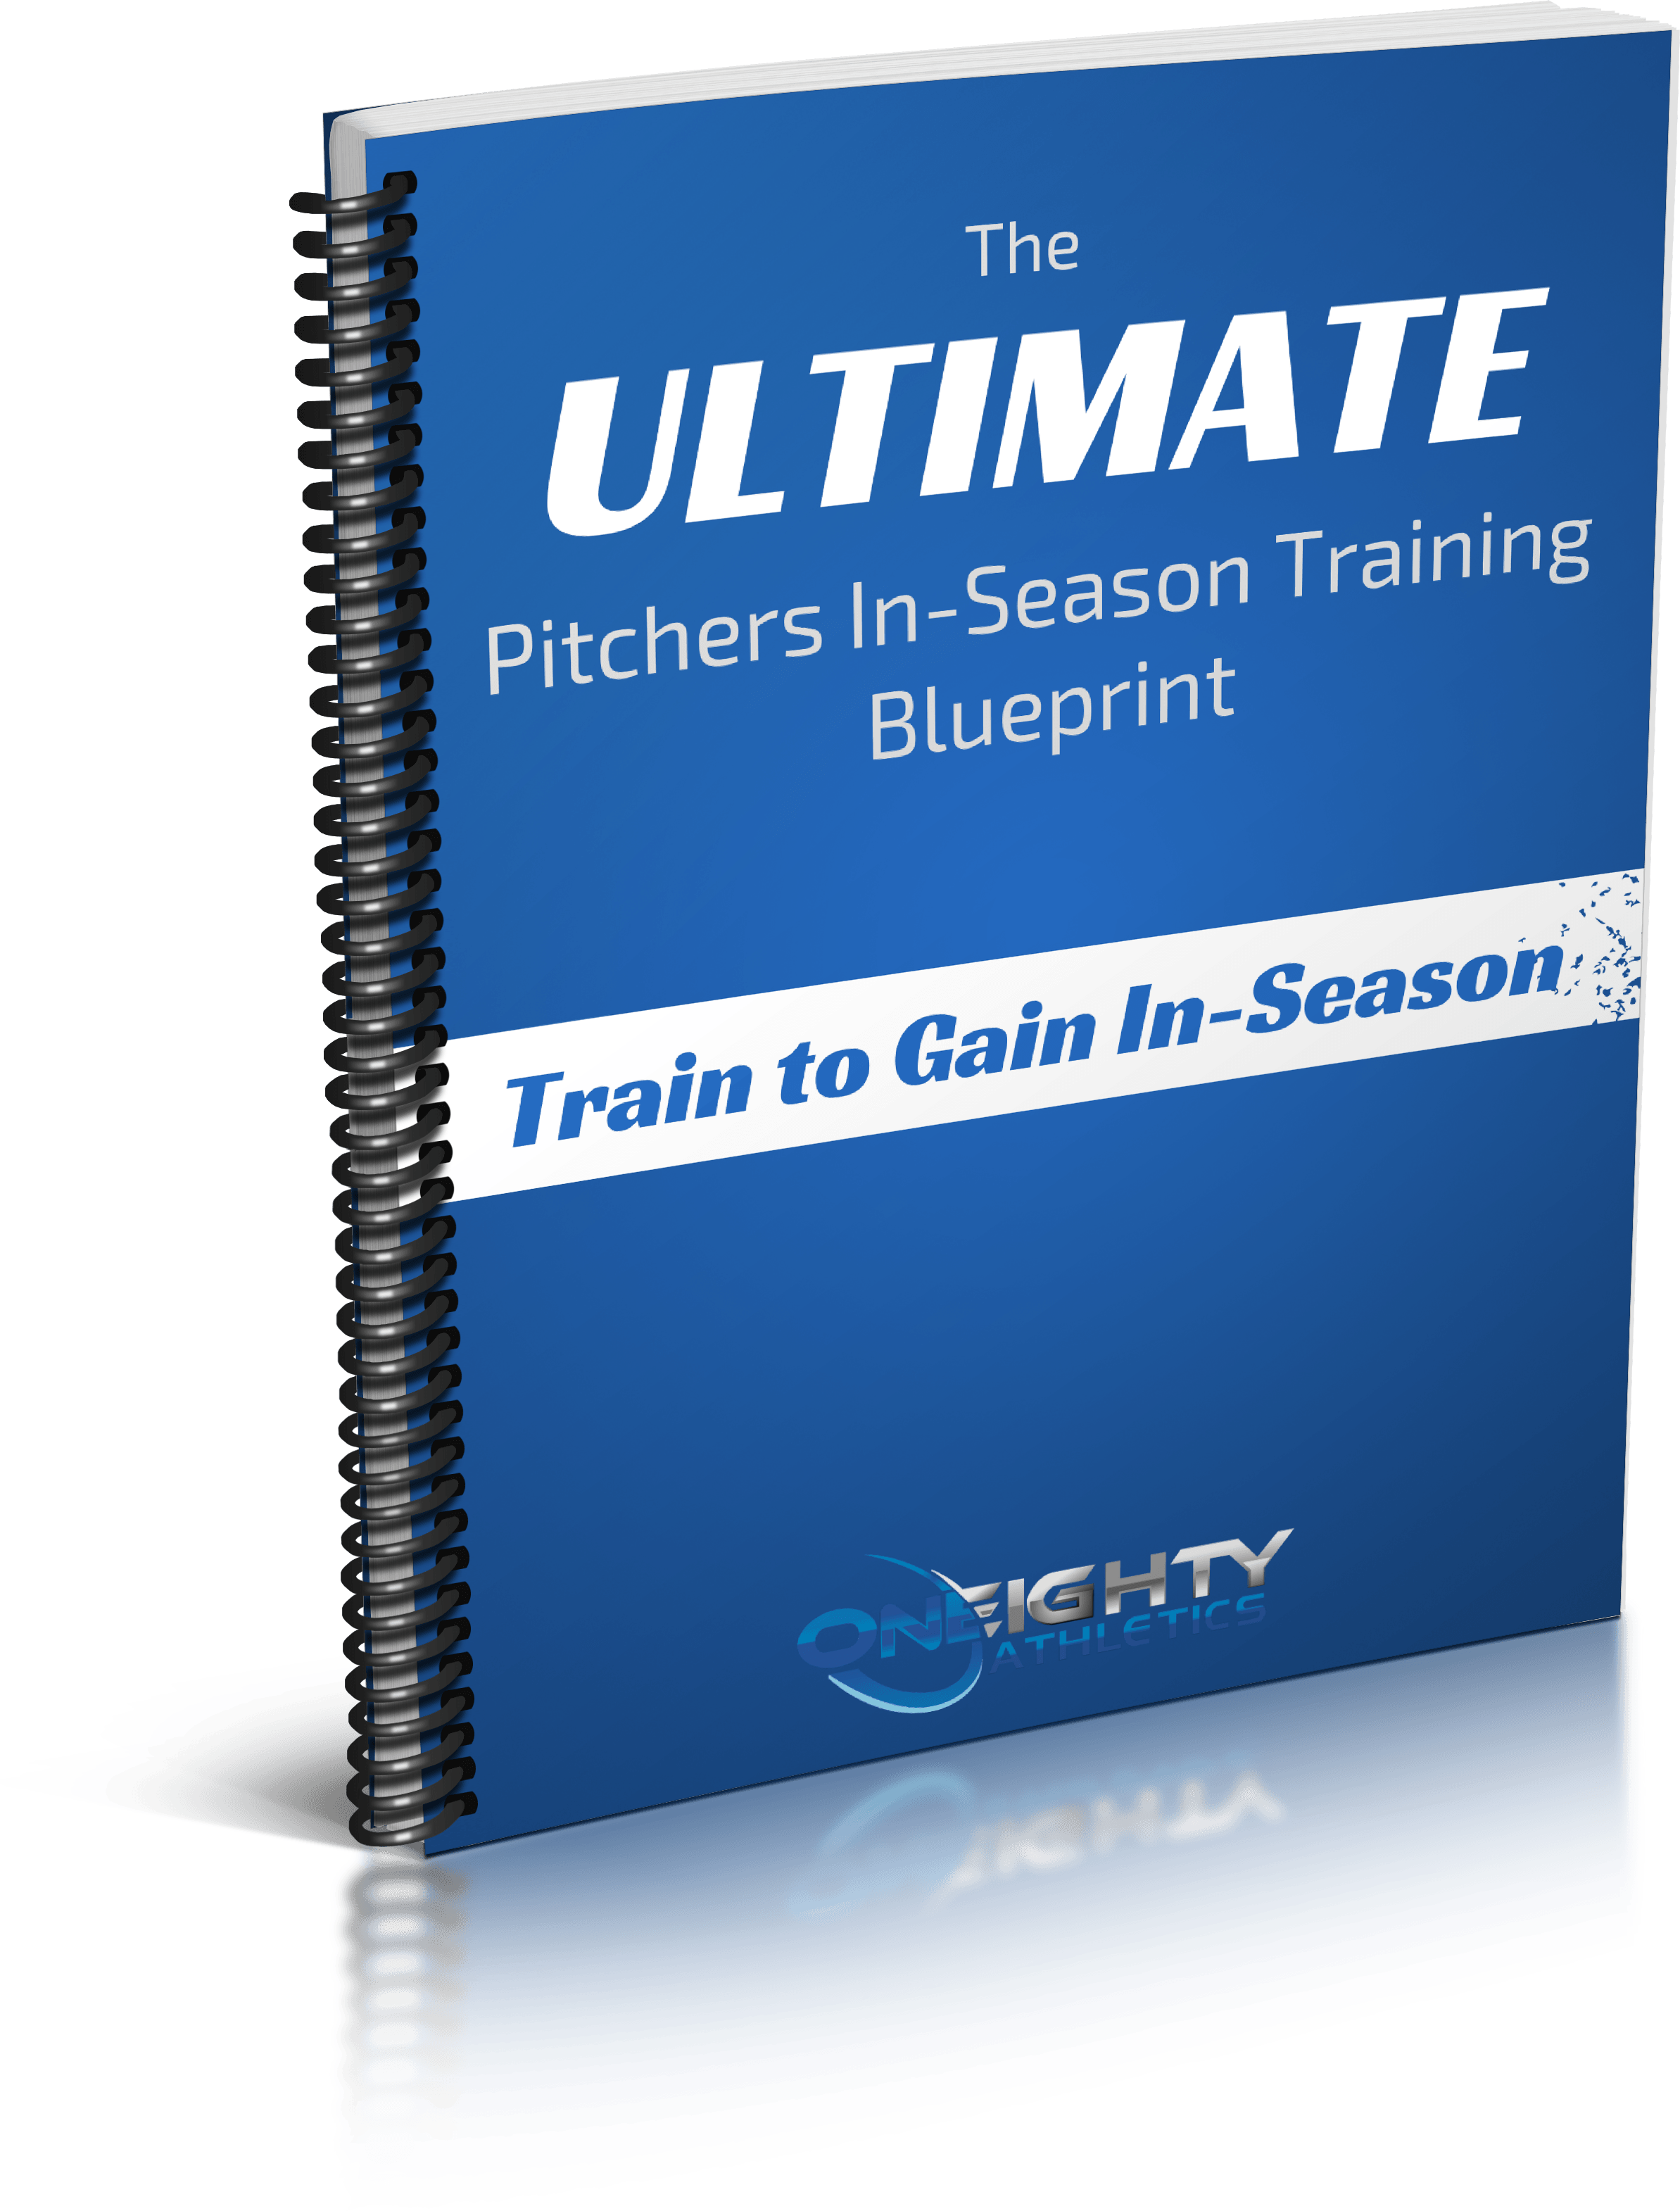 The ultimate pitchers inseason training blueprint get the instructions youve been looking for malvernweather Image collections